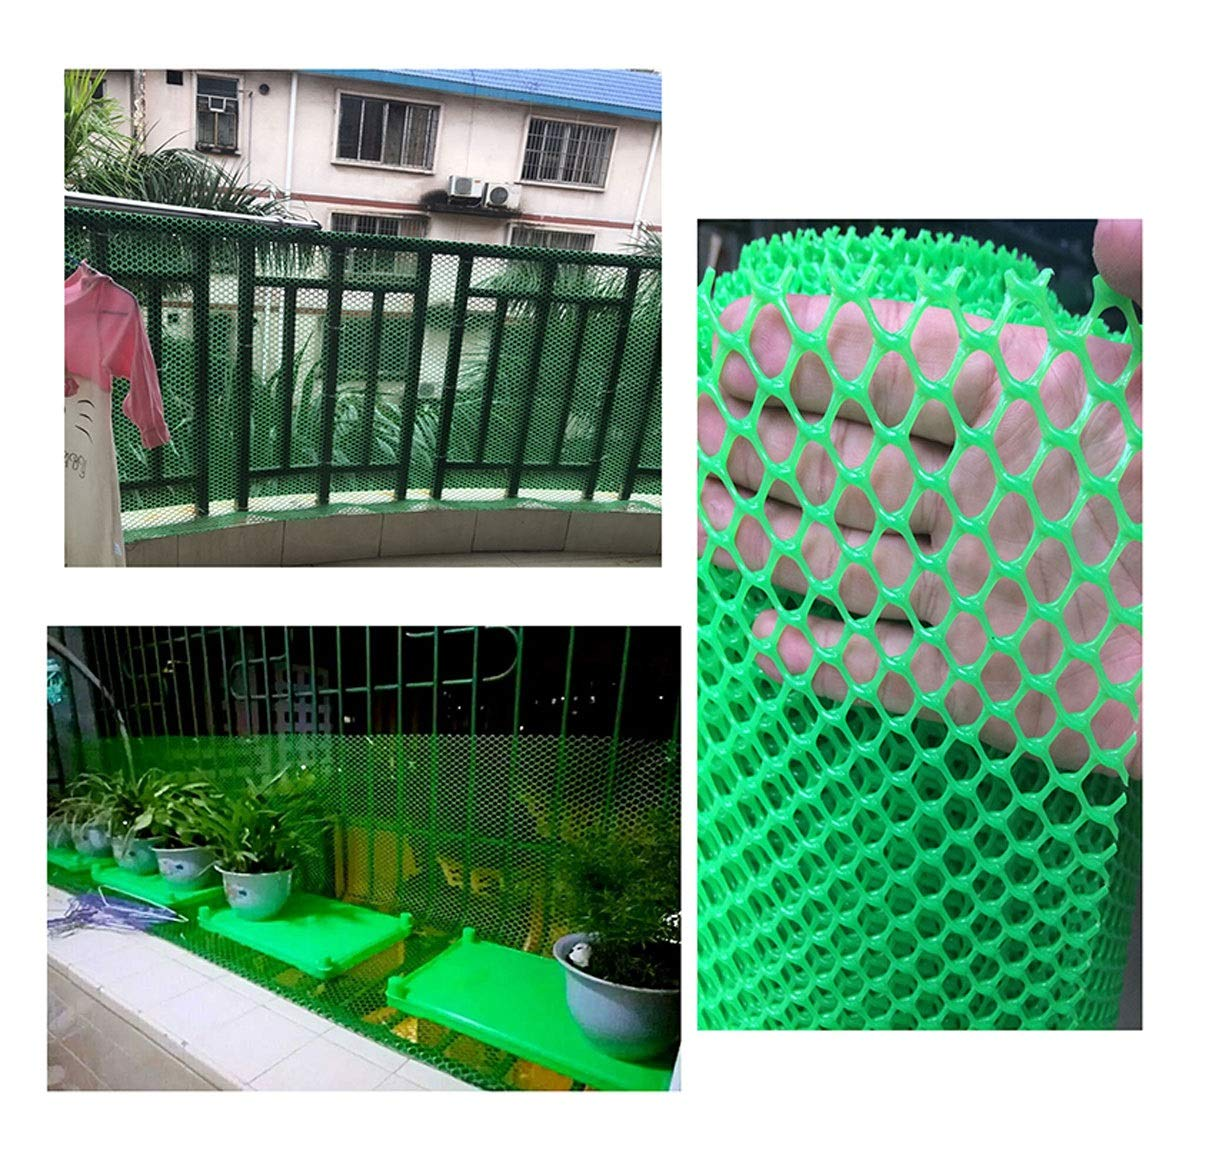 Grass Protection Mesh for Lawn or Car Park Reinforcement Green Plastic Child Safety Net Balcony Protection Net Stairs Anti-fall Net 10m 20m 30m 50m (Size : 2 * 50m) NNFHW ♦ Plastic safety mesh with a diameter of 1.8cm prevents children's head and body from falling through the railing and prevents toys and shoes from falling from the gap between the armrests. It can even be used as a pet safety door. Provide a safe gaming environment for children. ♦ Lawn protective grilles are used to reinforce large areas of flat surfaces, especially parks and lawn areas, slopes and embankments. The turf grid increases the load-bearing capacity of the soil. Effectively prevents the formation of ruts. Suitable for short-term parking, driveways, etc. ♦ Plastic flat net waterproof, wear-resistant, tough, light weight, long service life, non-toxic and tasteless, high transparency. Ideal for interior and exterior of residential buildings such as railings, stairs, cots, hallways, balconies, etc. The honeycomb design does not interfere with your view. 3